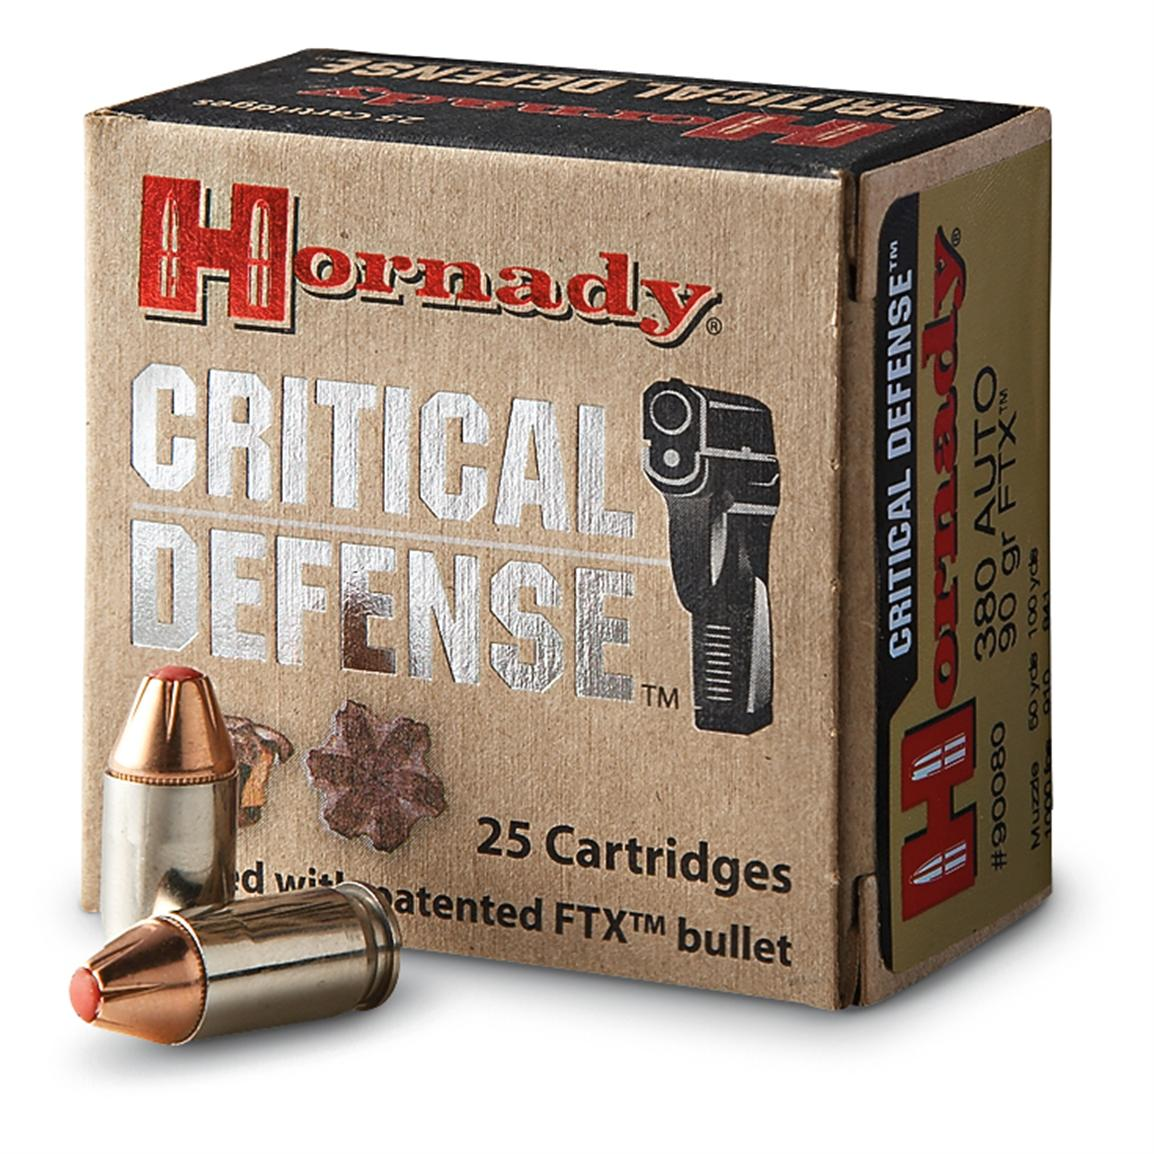 Hornady Critical Defense, .357 Magnum, 125 Grain, FTX, 25 Rounds • Box photoed is for illustrative purposes only, offer is for Hornady Critical Defense .357 Magnum